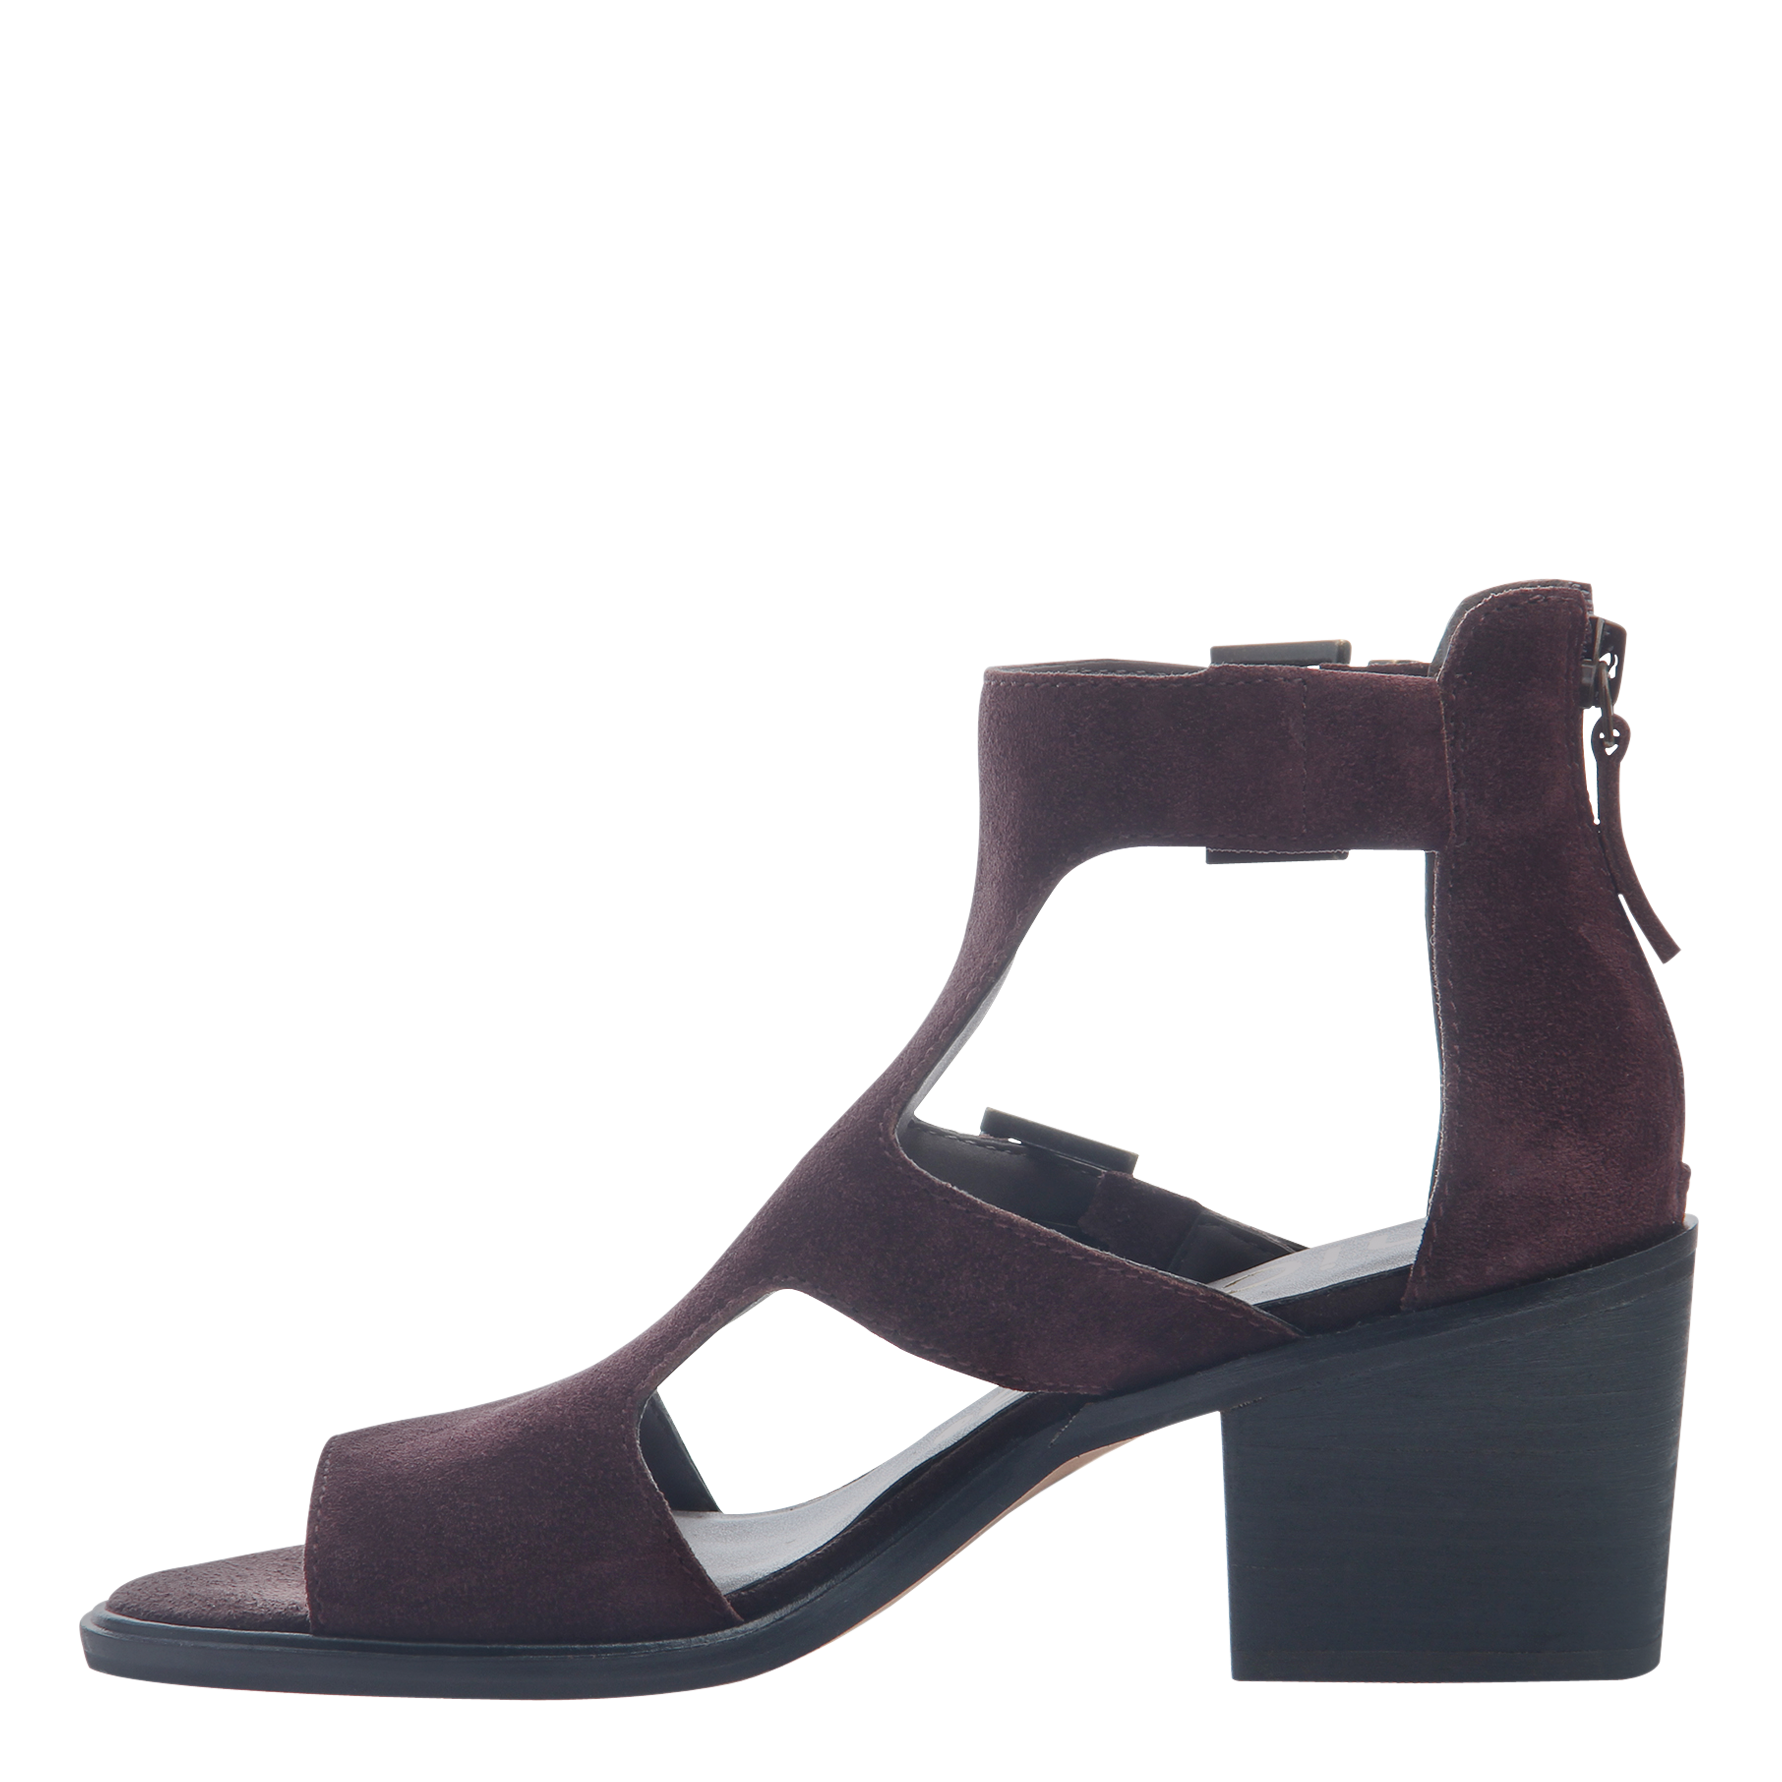 Womens heeled sandals Jahida in burgundy inside view